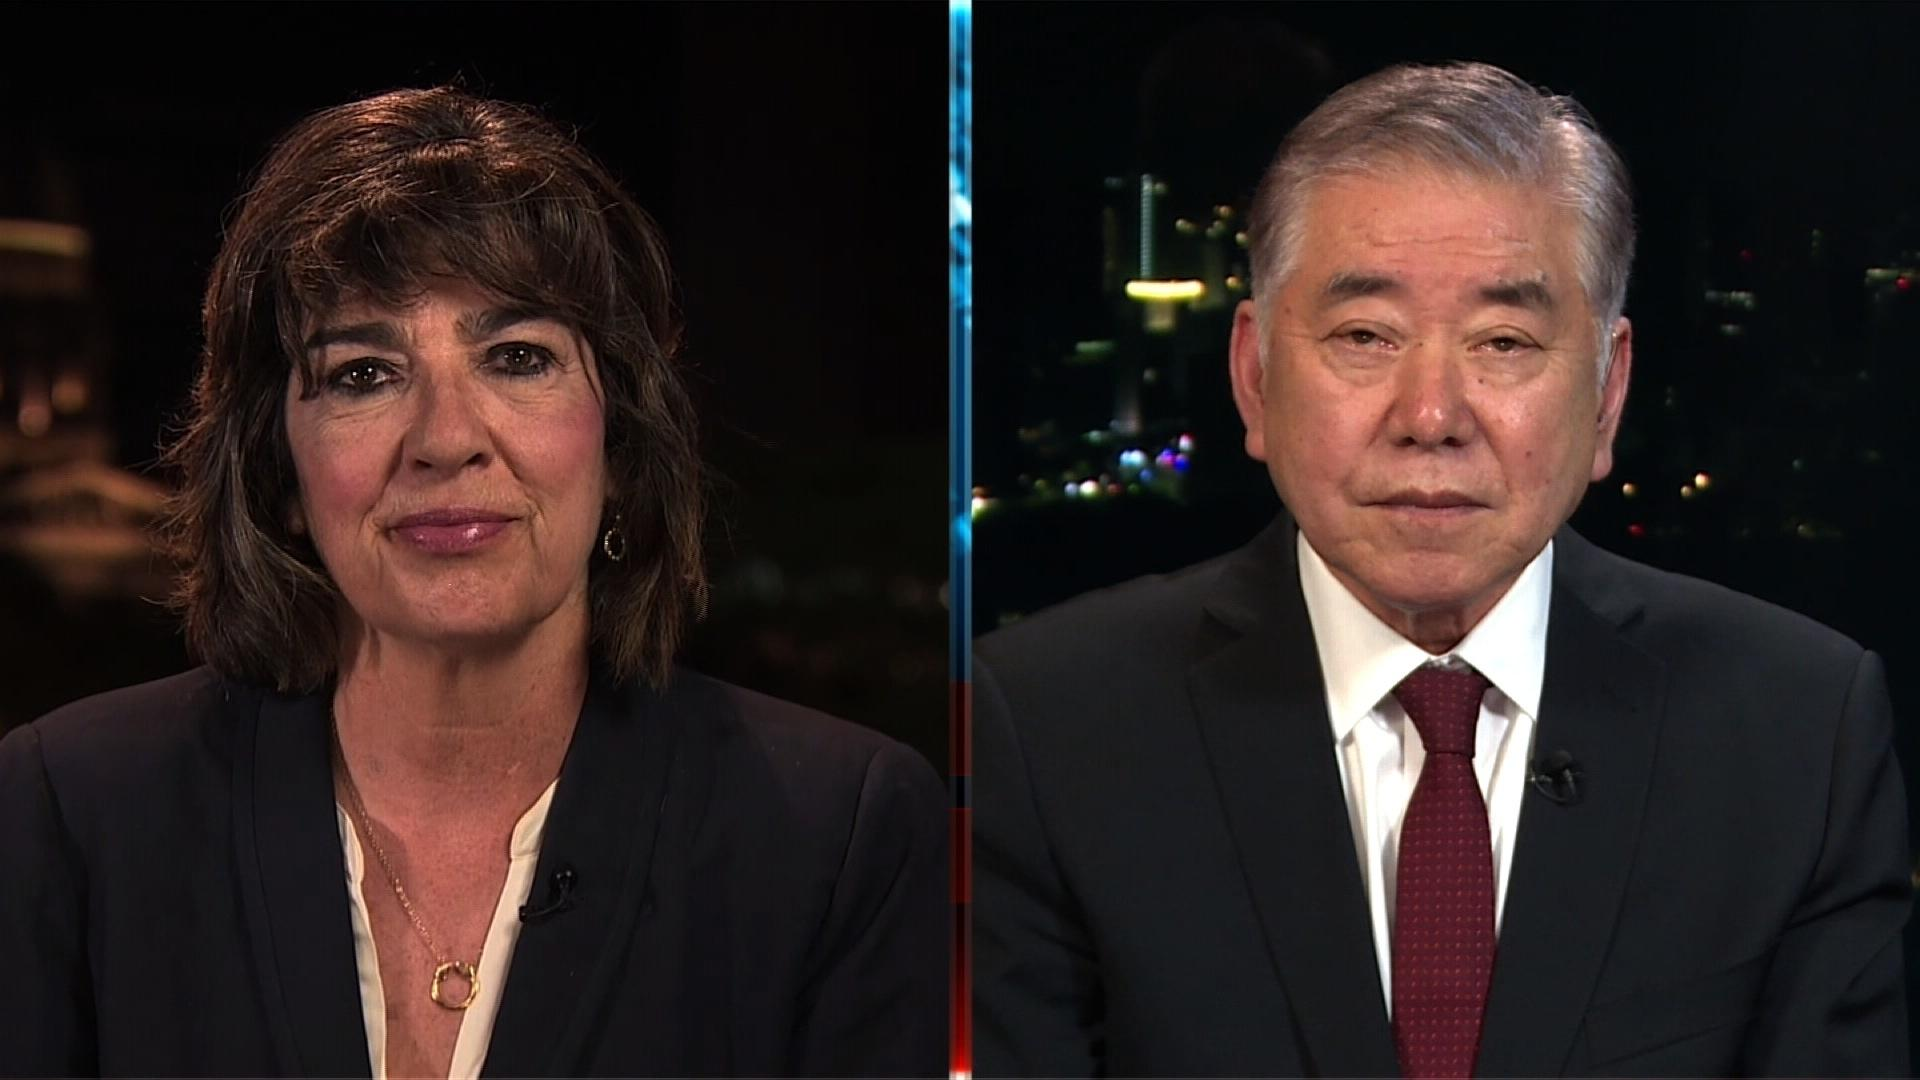 Amanpour on pbs amanpour a look back at the singapore summit amanpour on pbs amanpour a look back at the singapore summit twin cities pbs thecheapjerseys Image collections